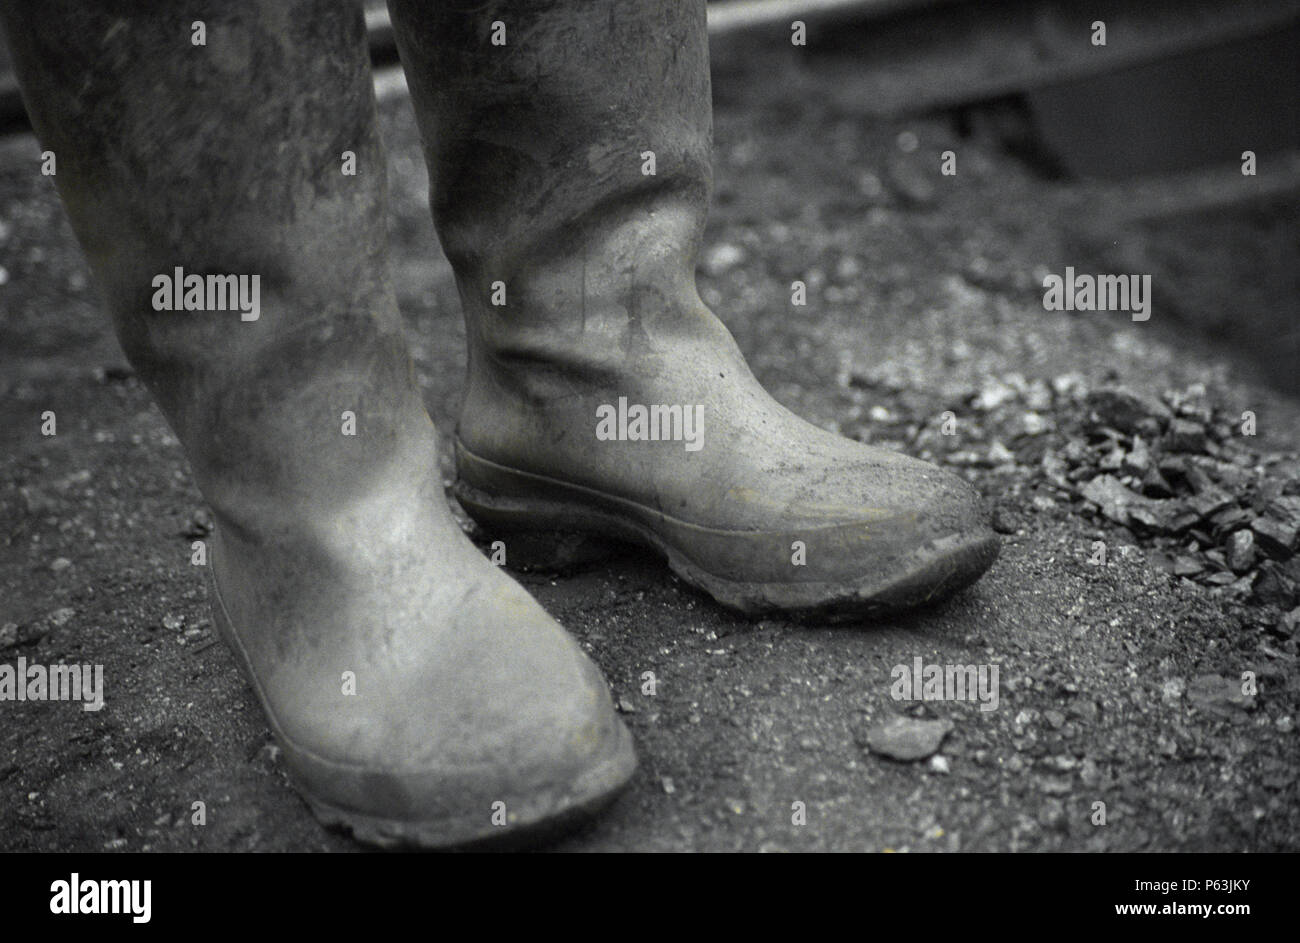 Rubber boots on coal mine. China is one of the largest producer of coal in the world and it has also one of the worse recorded mining conditions. And  Stock Photo